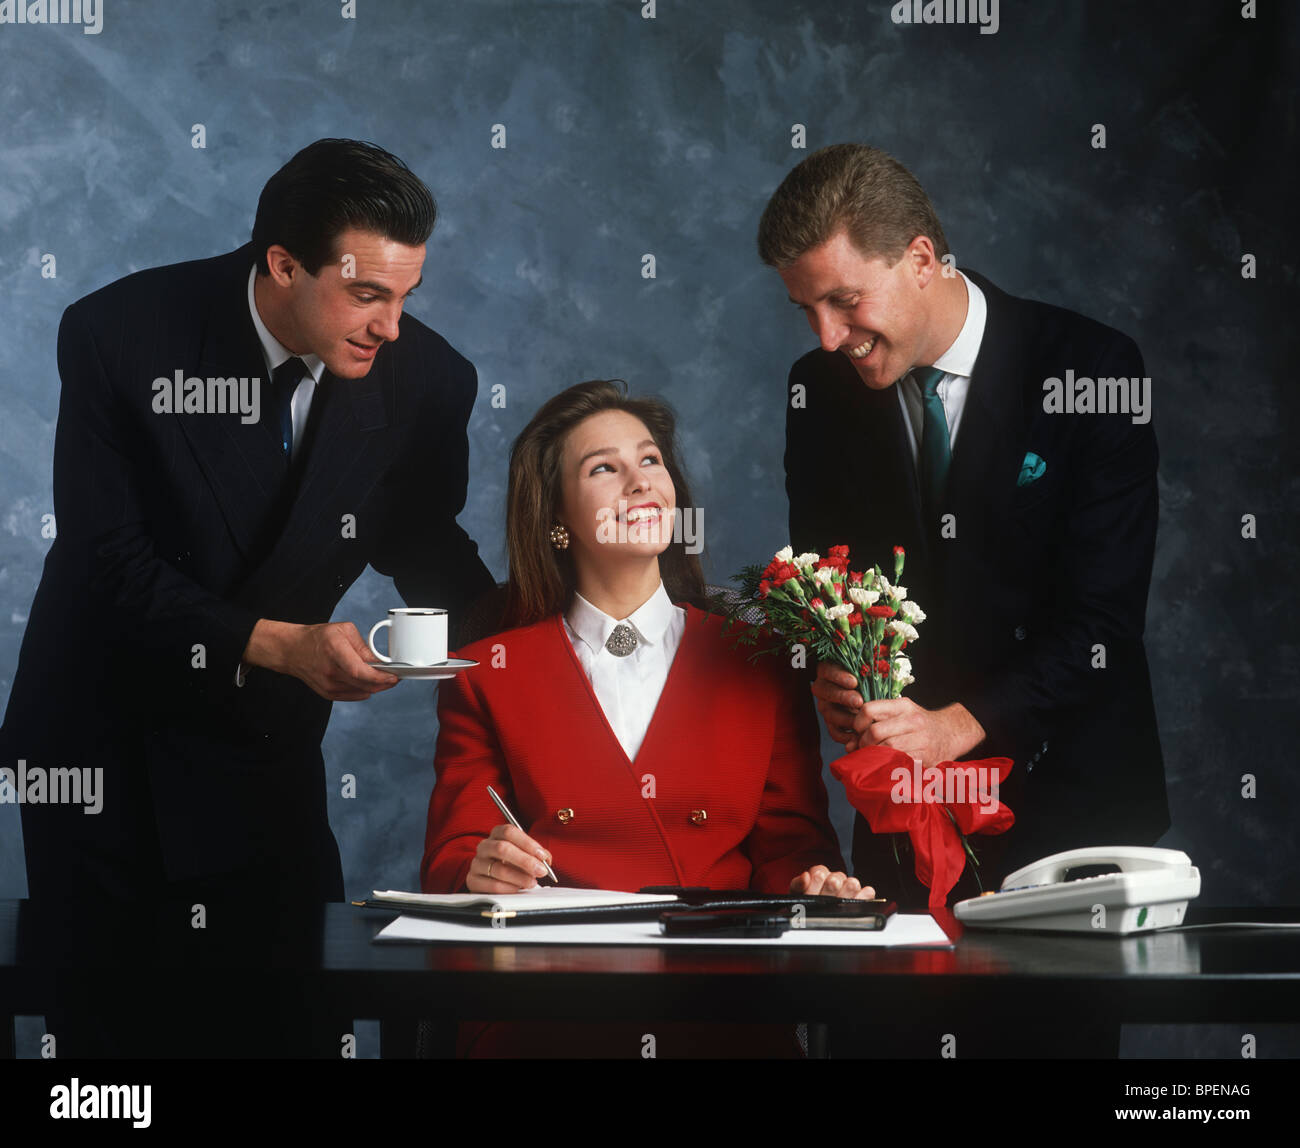 Two men and a woman in an office situation - Stock Image